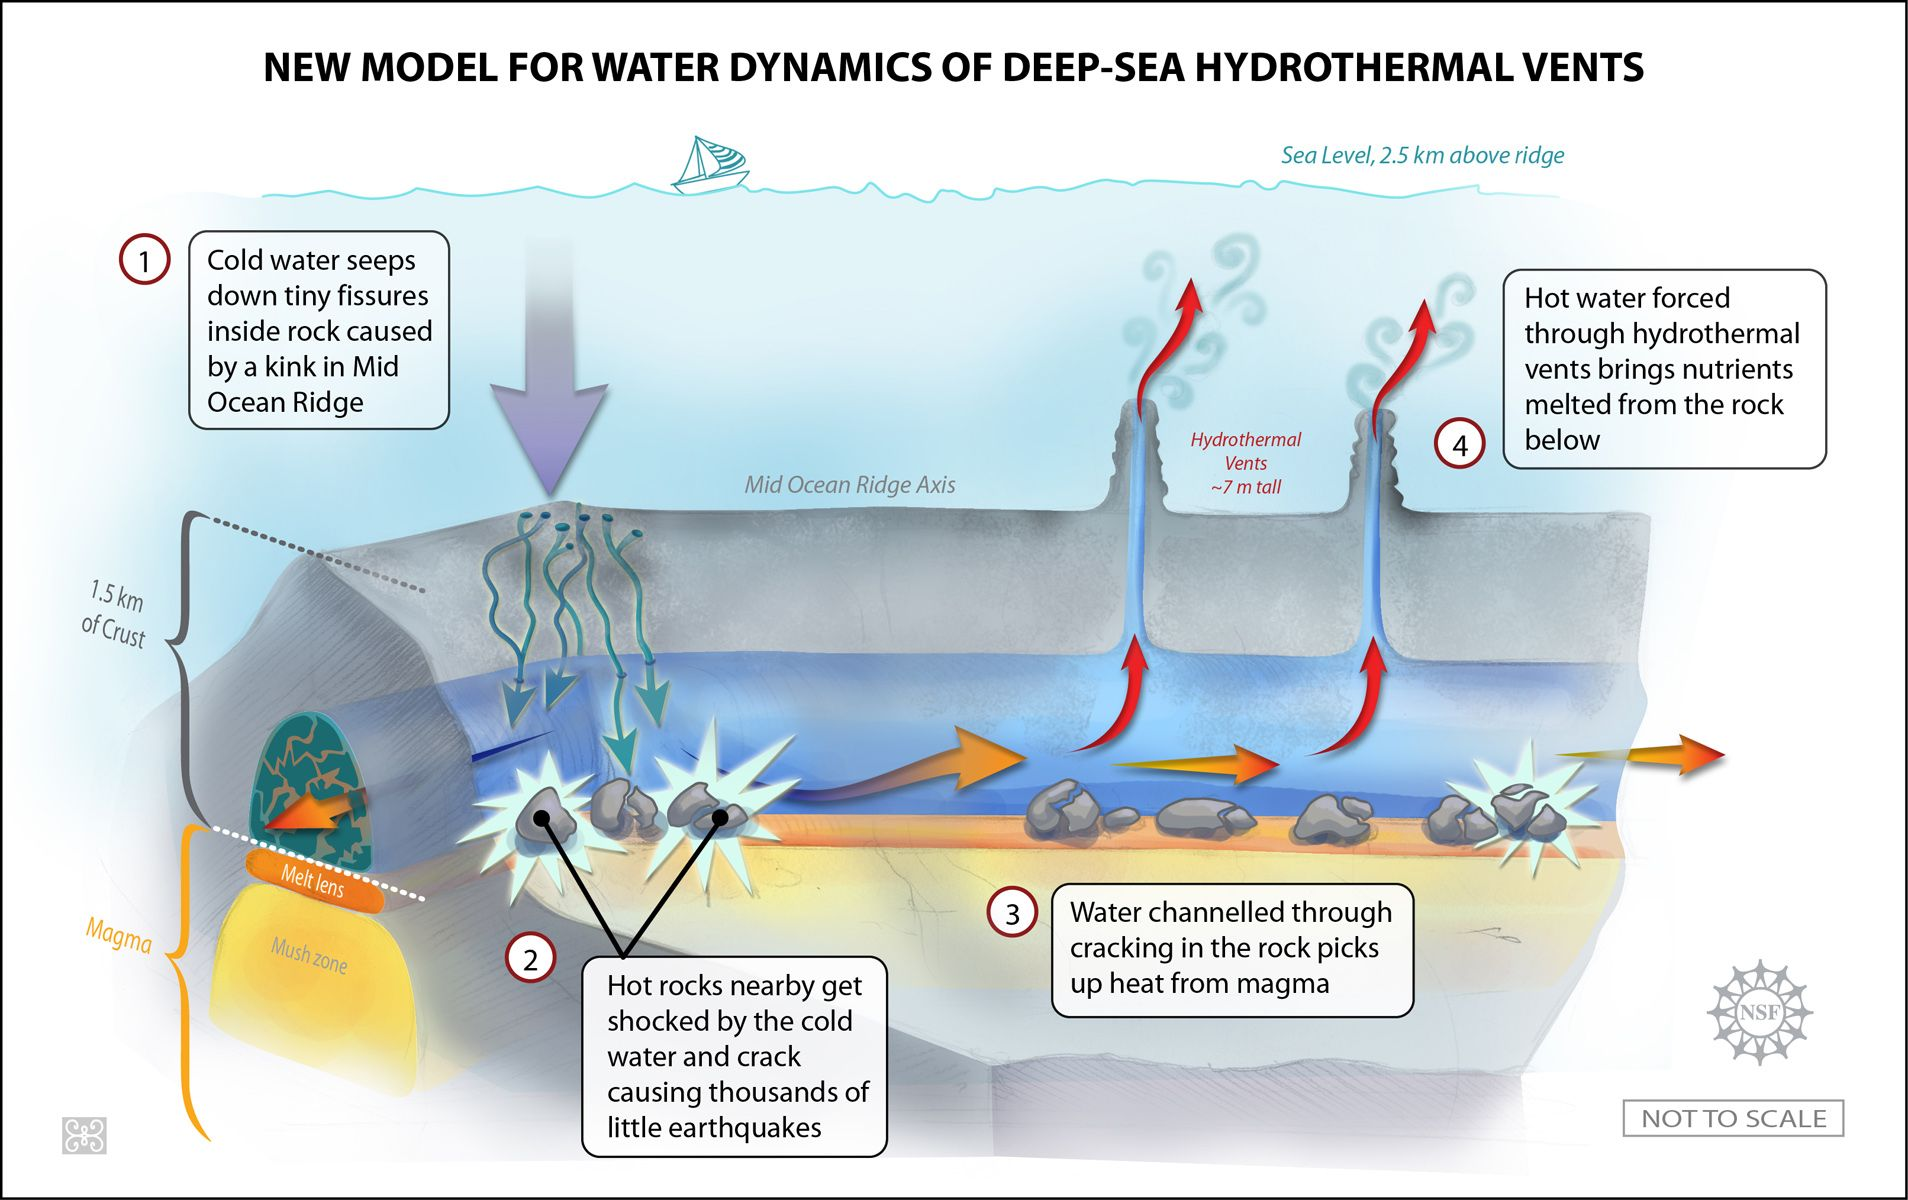 medium resolution of new model for water dynamics of hydrothermal vents seafloor spreading plate tectonics earth science